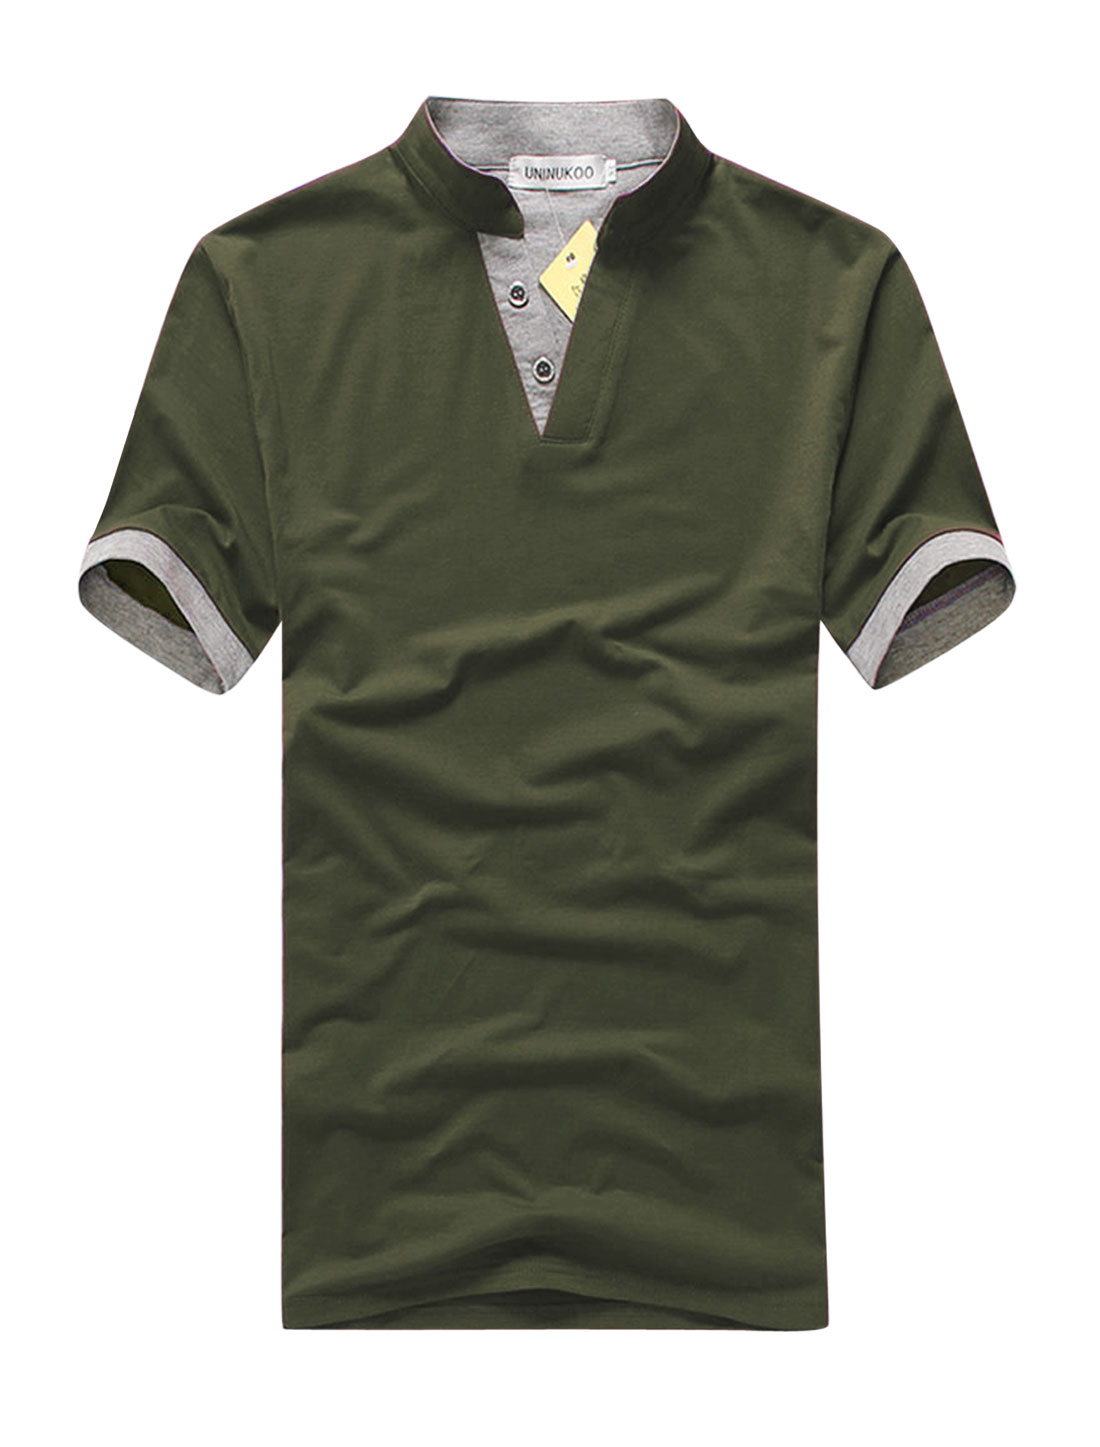 Men Pullover Stand Collar 3/4 Placket Slim Fit Shirt Olive Green M